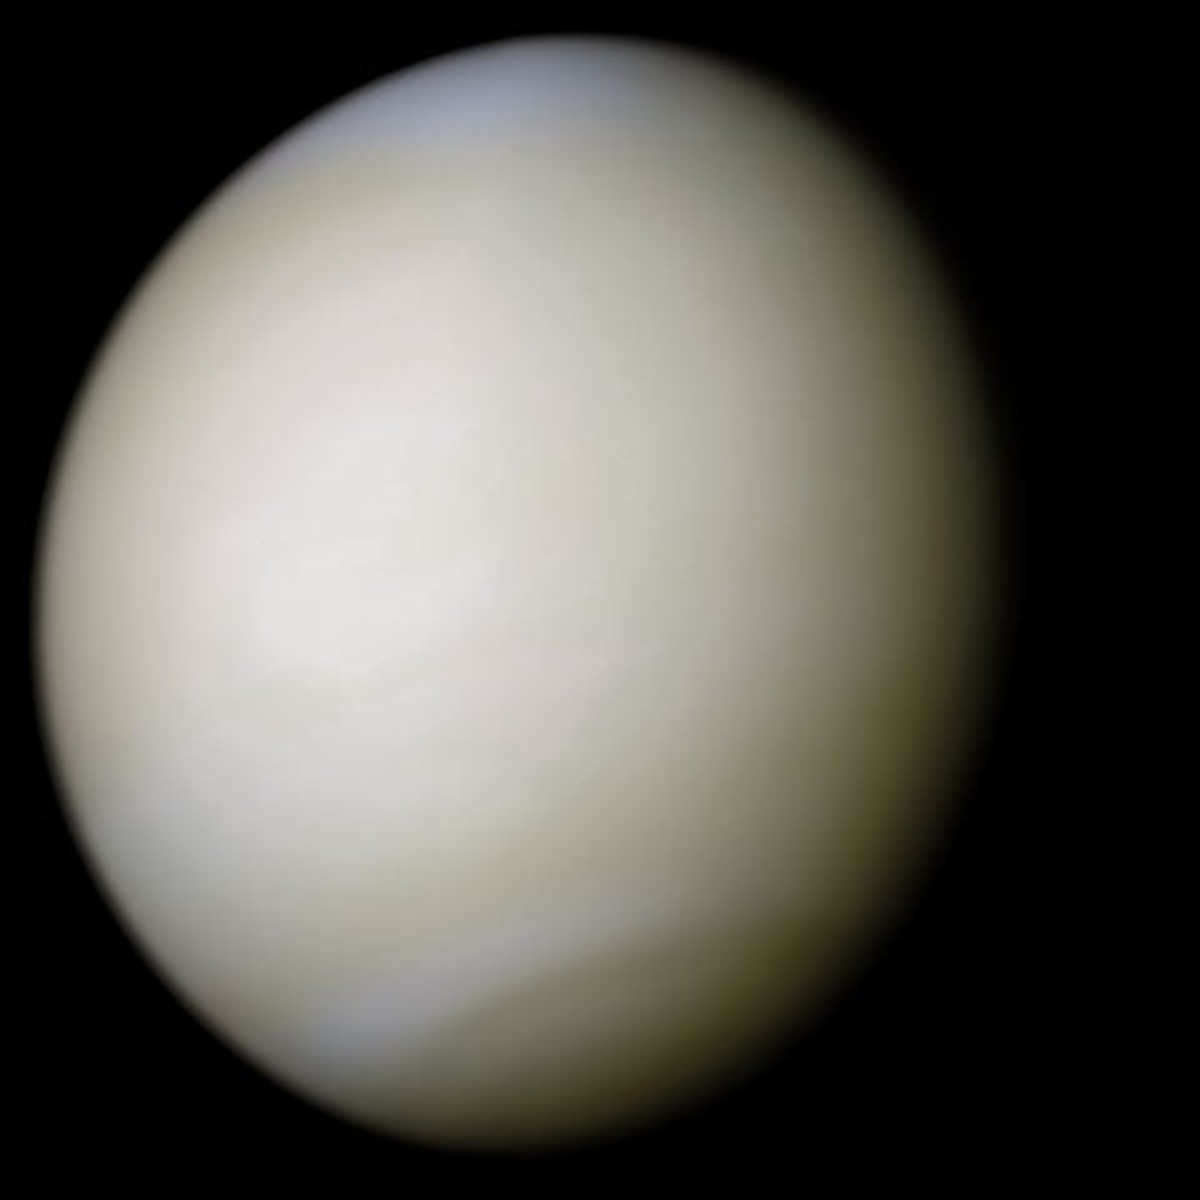 Image captured by spacecraft of Venus and its natural color.